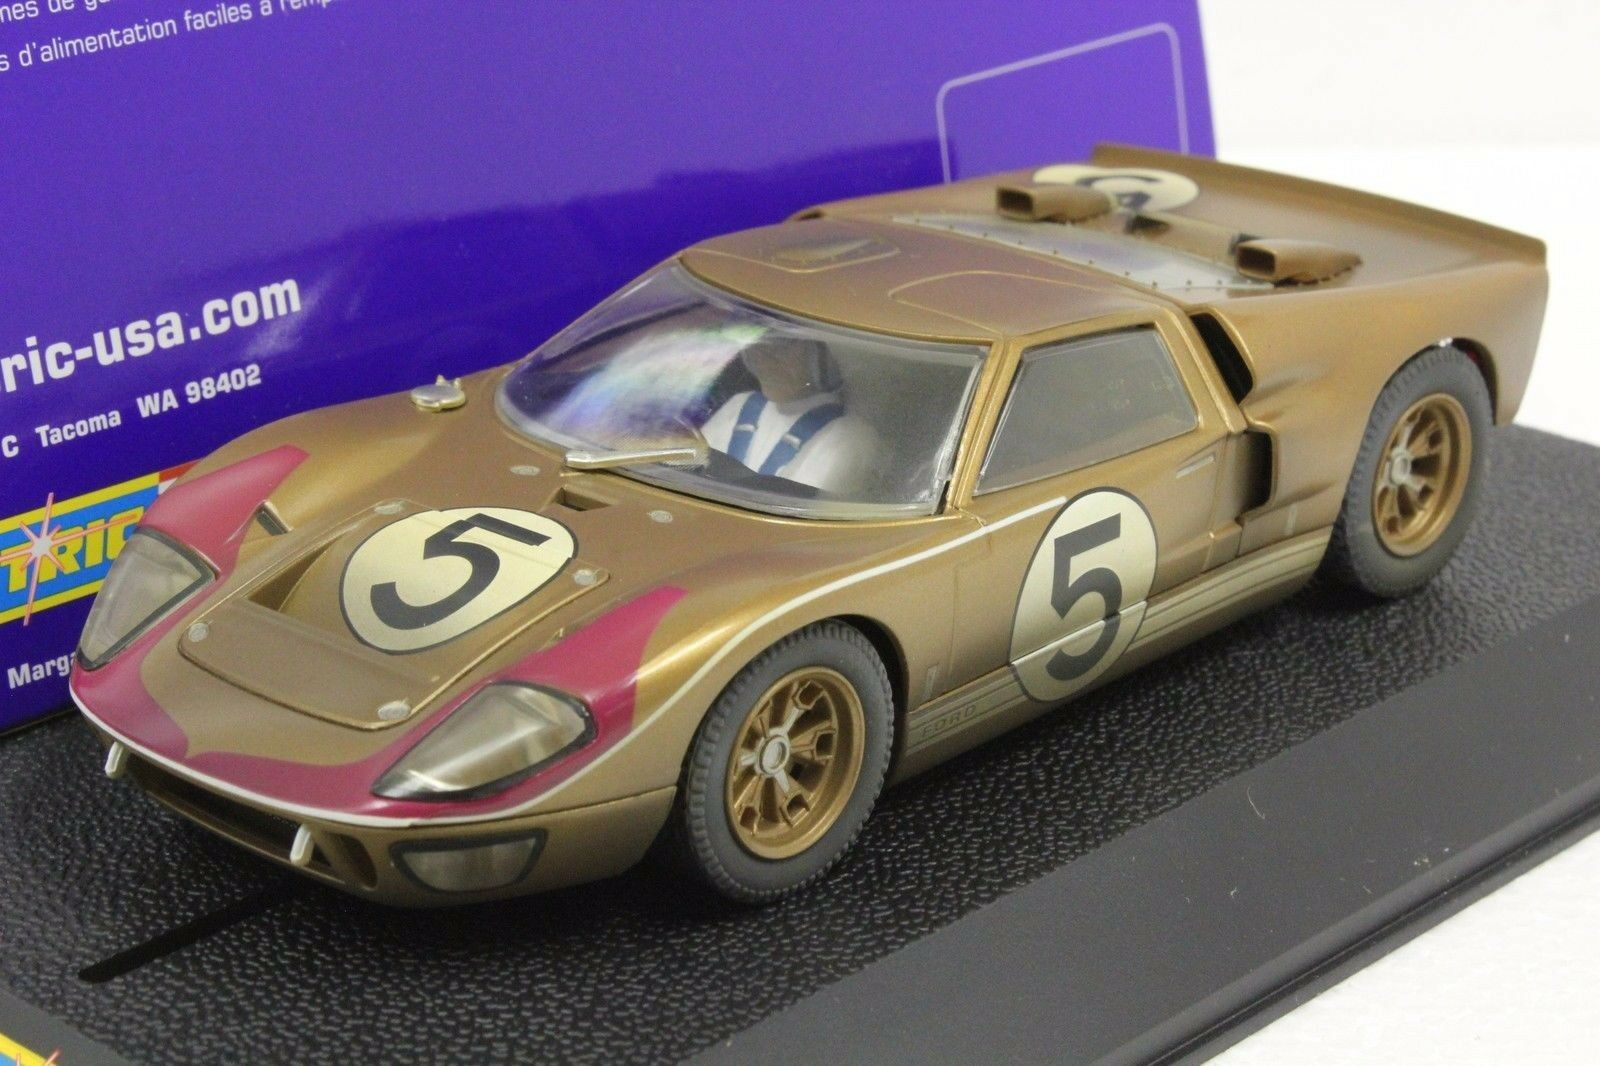 Scalextric C2465 Goodwood Ford GT40 Con Luces Nuevo 1 32 Slot Coche